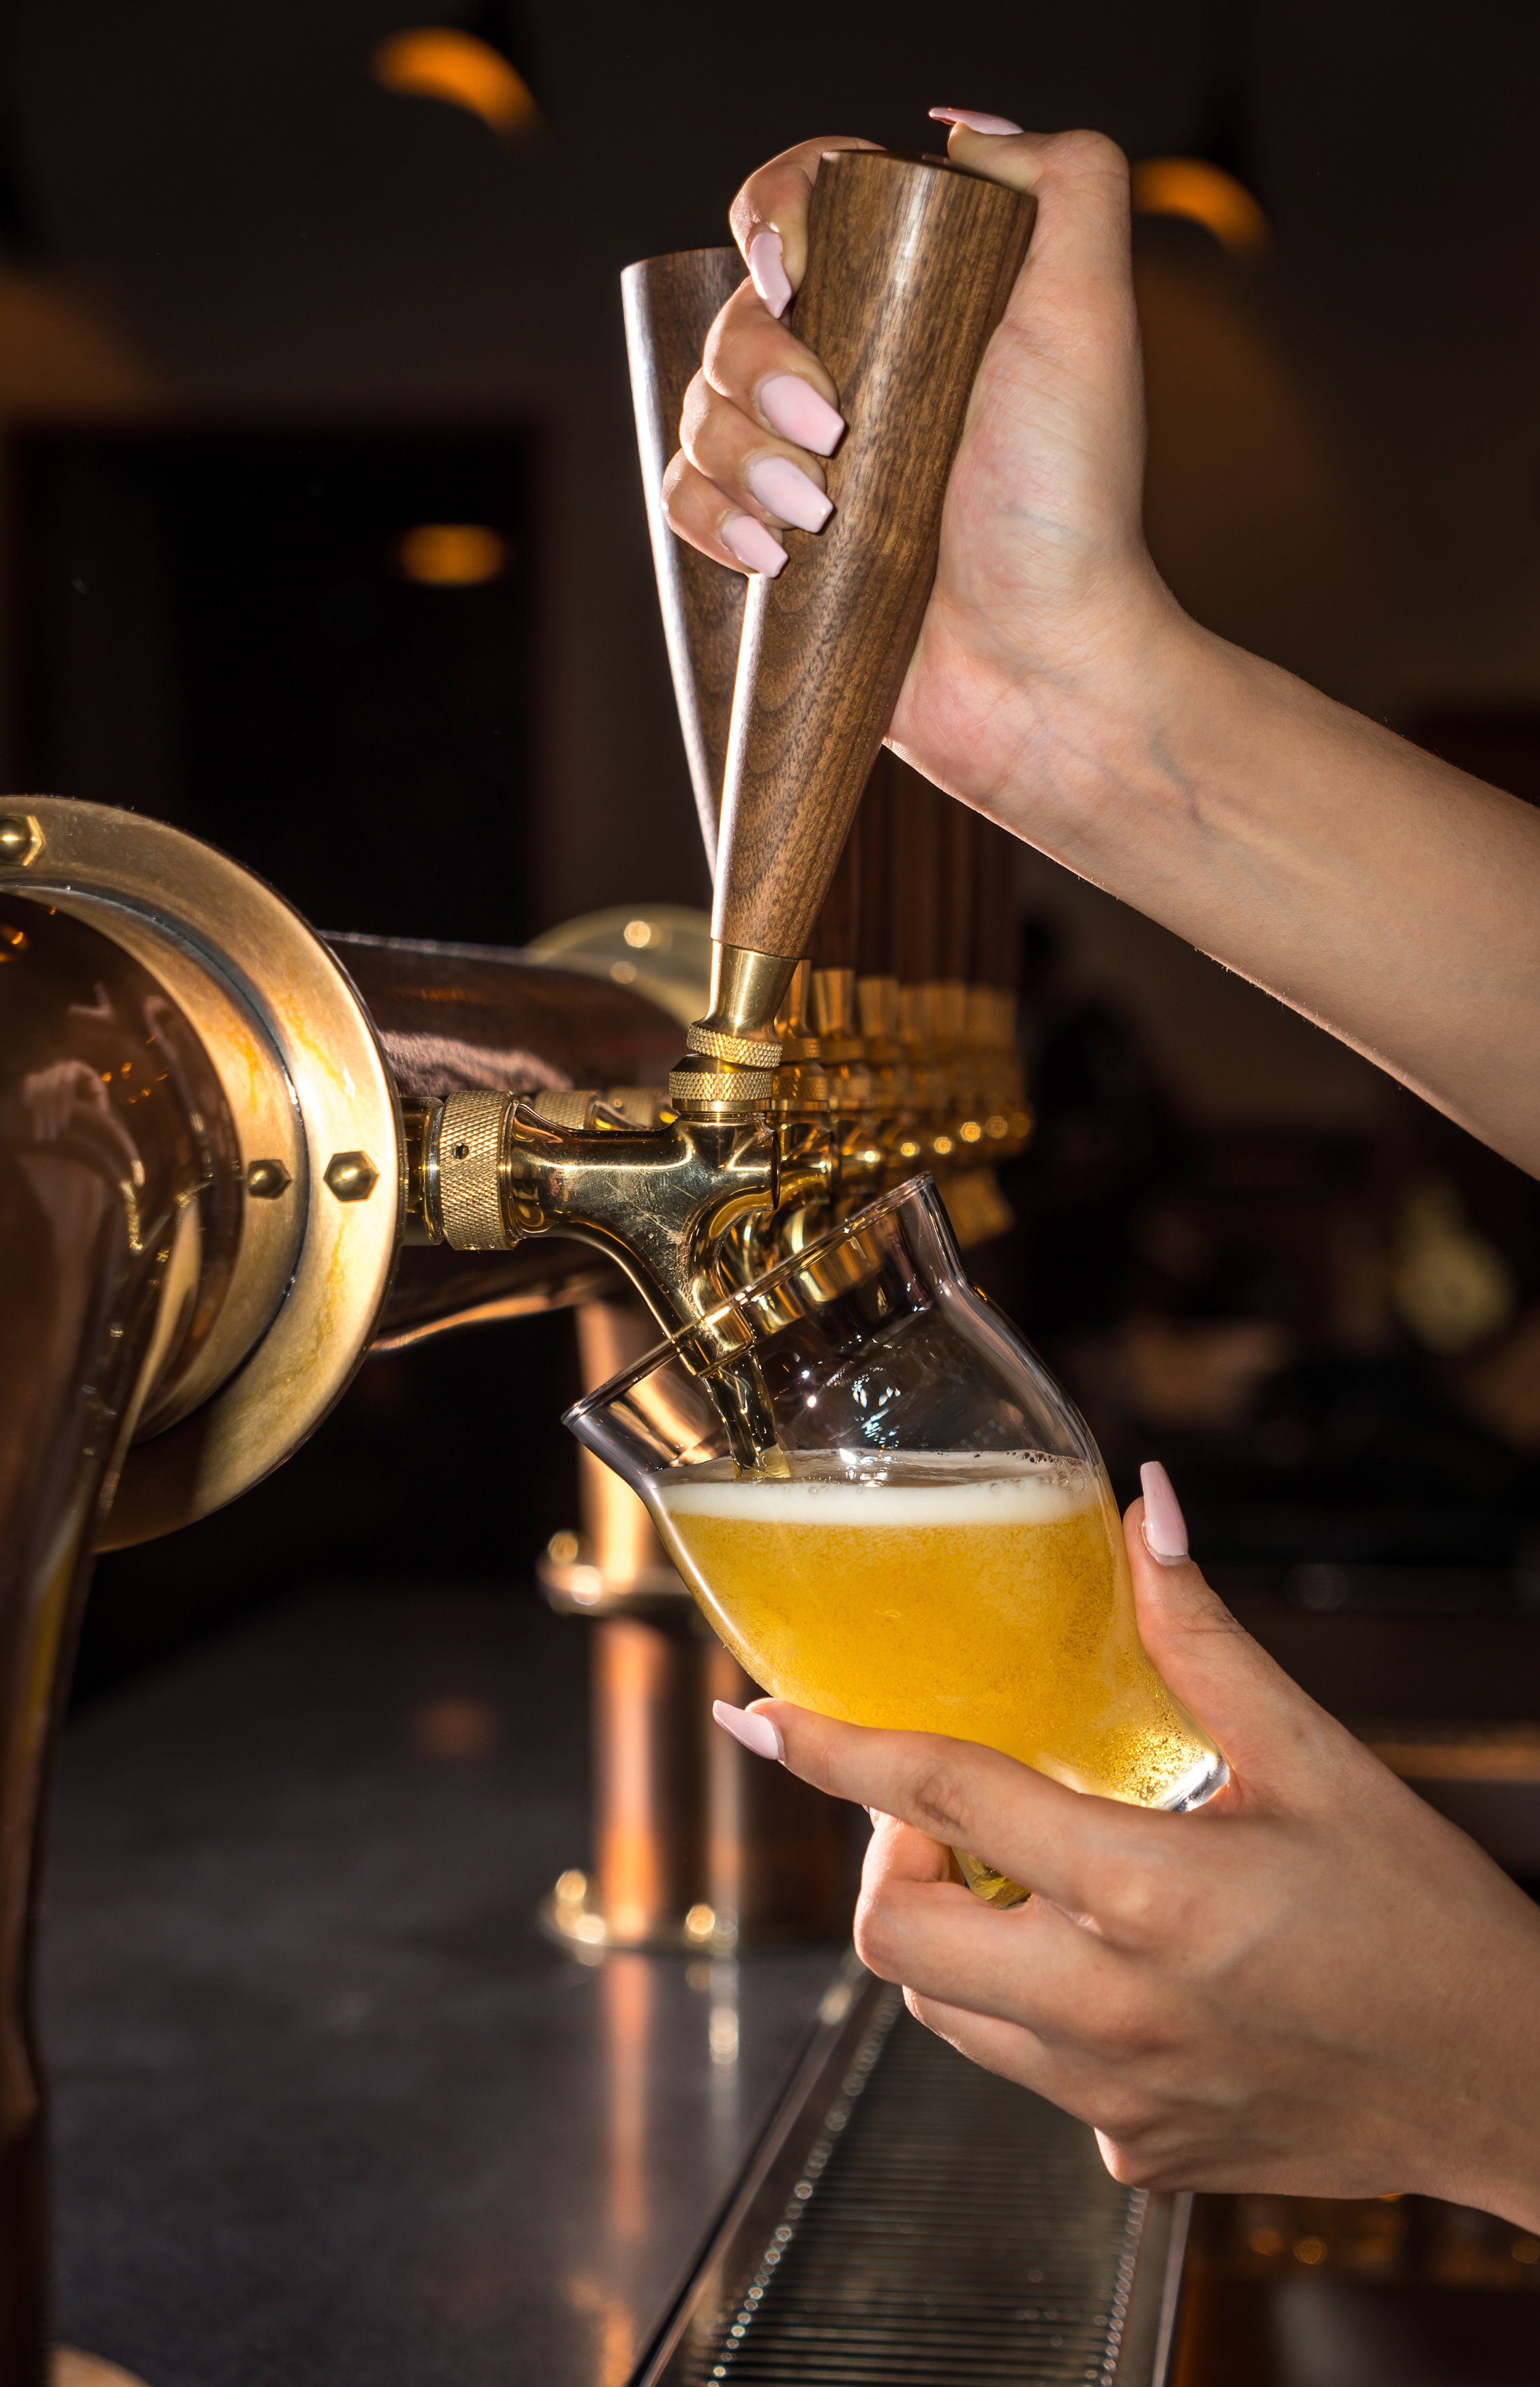 Pouring a beer at the Brakeman